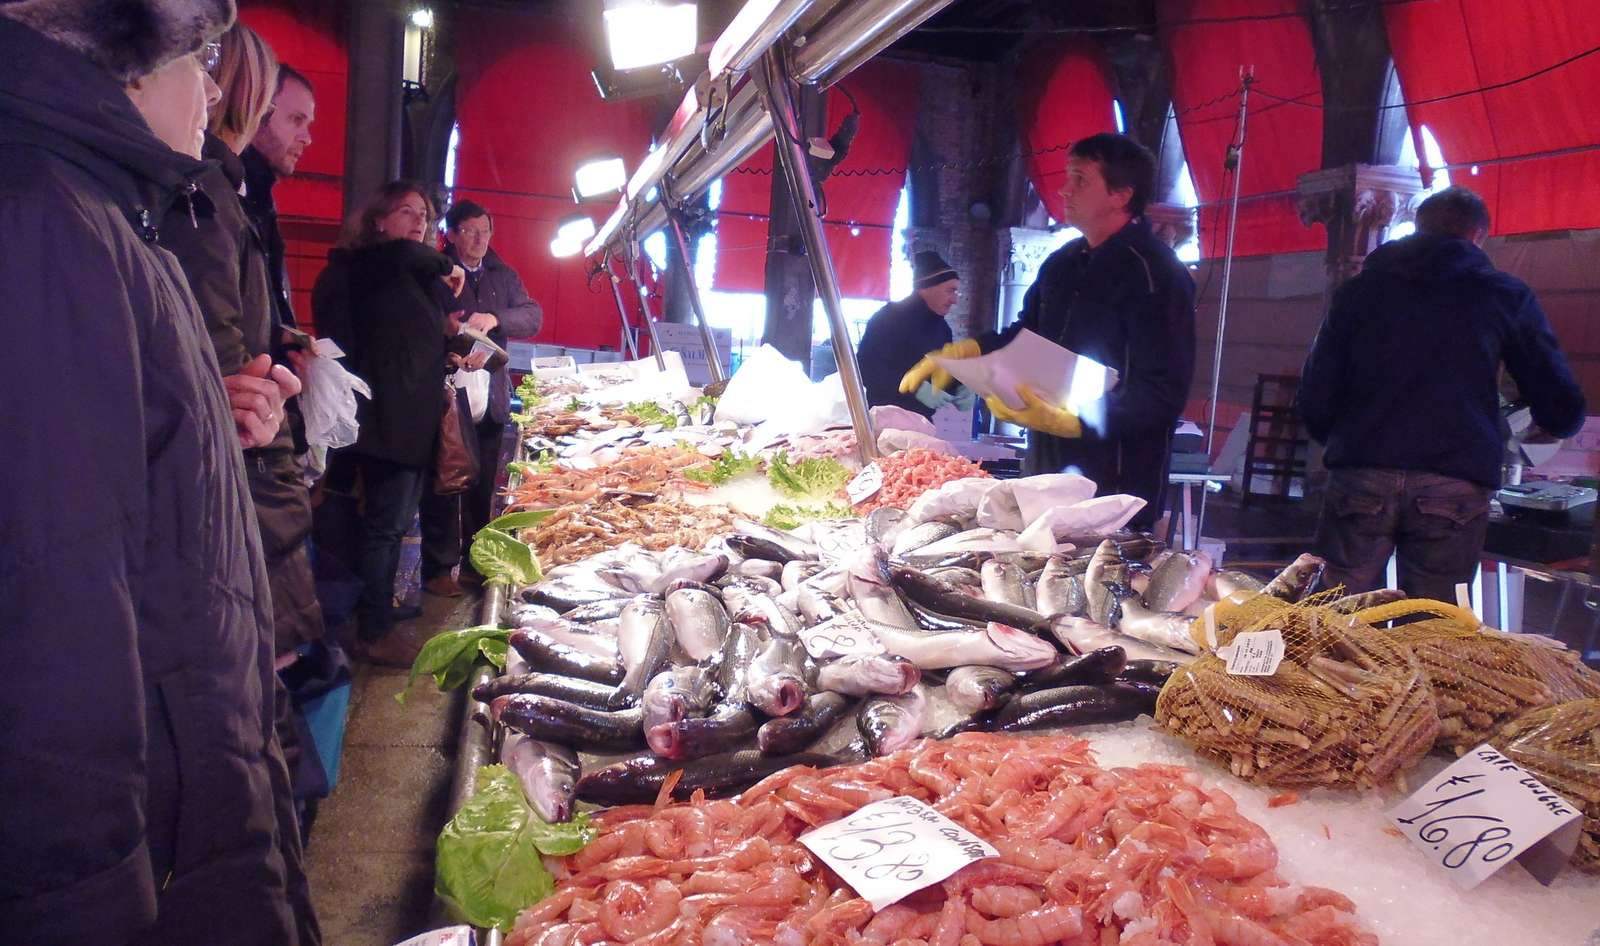 The fish market in Venice